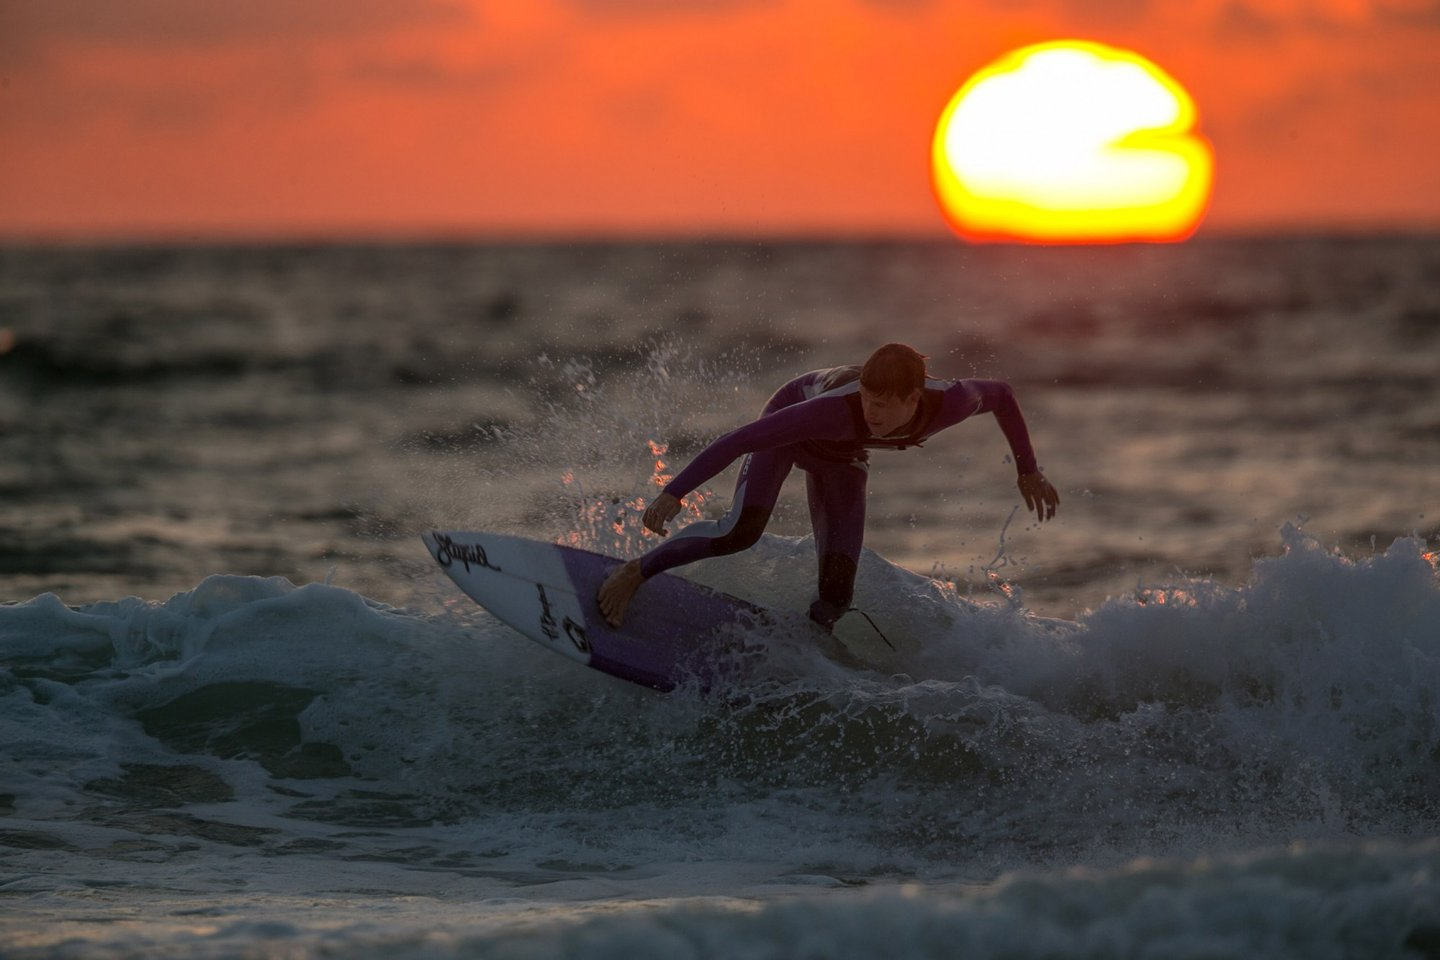 NEWQUAY, UNITED KINGDOM - AUGUST 06:  A surfer catches a wave as the sun sets on Fistral Beach on the first day of the Boardmasters surf and music festival in Newquay on August 6, 2014 in Cornwall, England. Since 1981, Newquay has been playing host to the Boardmasters surfing competition - which is part of a larger five-day surf, skate and music festival and has become a integral part of the continually popular British surf scene growing from humble beginnings, to one of the biggest events on the British surfing calendar. It now attracts professional surfers from across the globe to compete on the Cornish beach that is seen by many as the birthplace of modern British surfing.  (Photo by Matt Cardy/Getty Images)